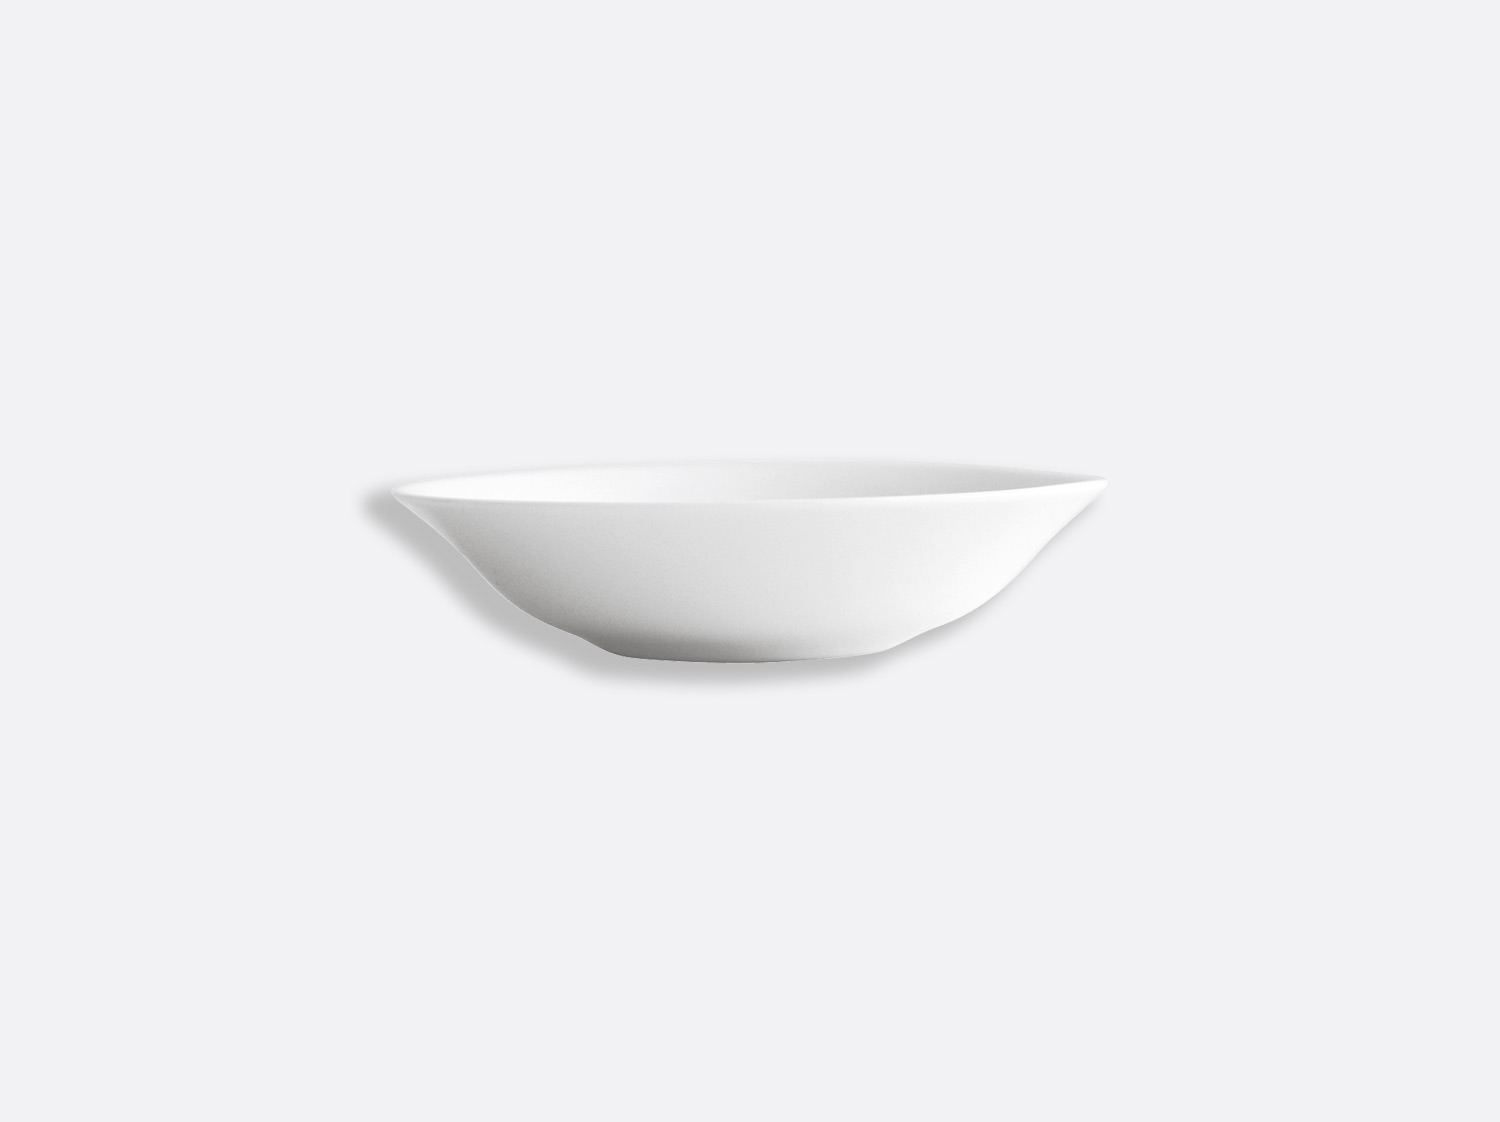 Coupelle Corée 20 cl en porcelaine de la collection DOMUS BLANC Bernardaud